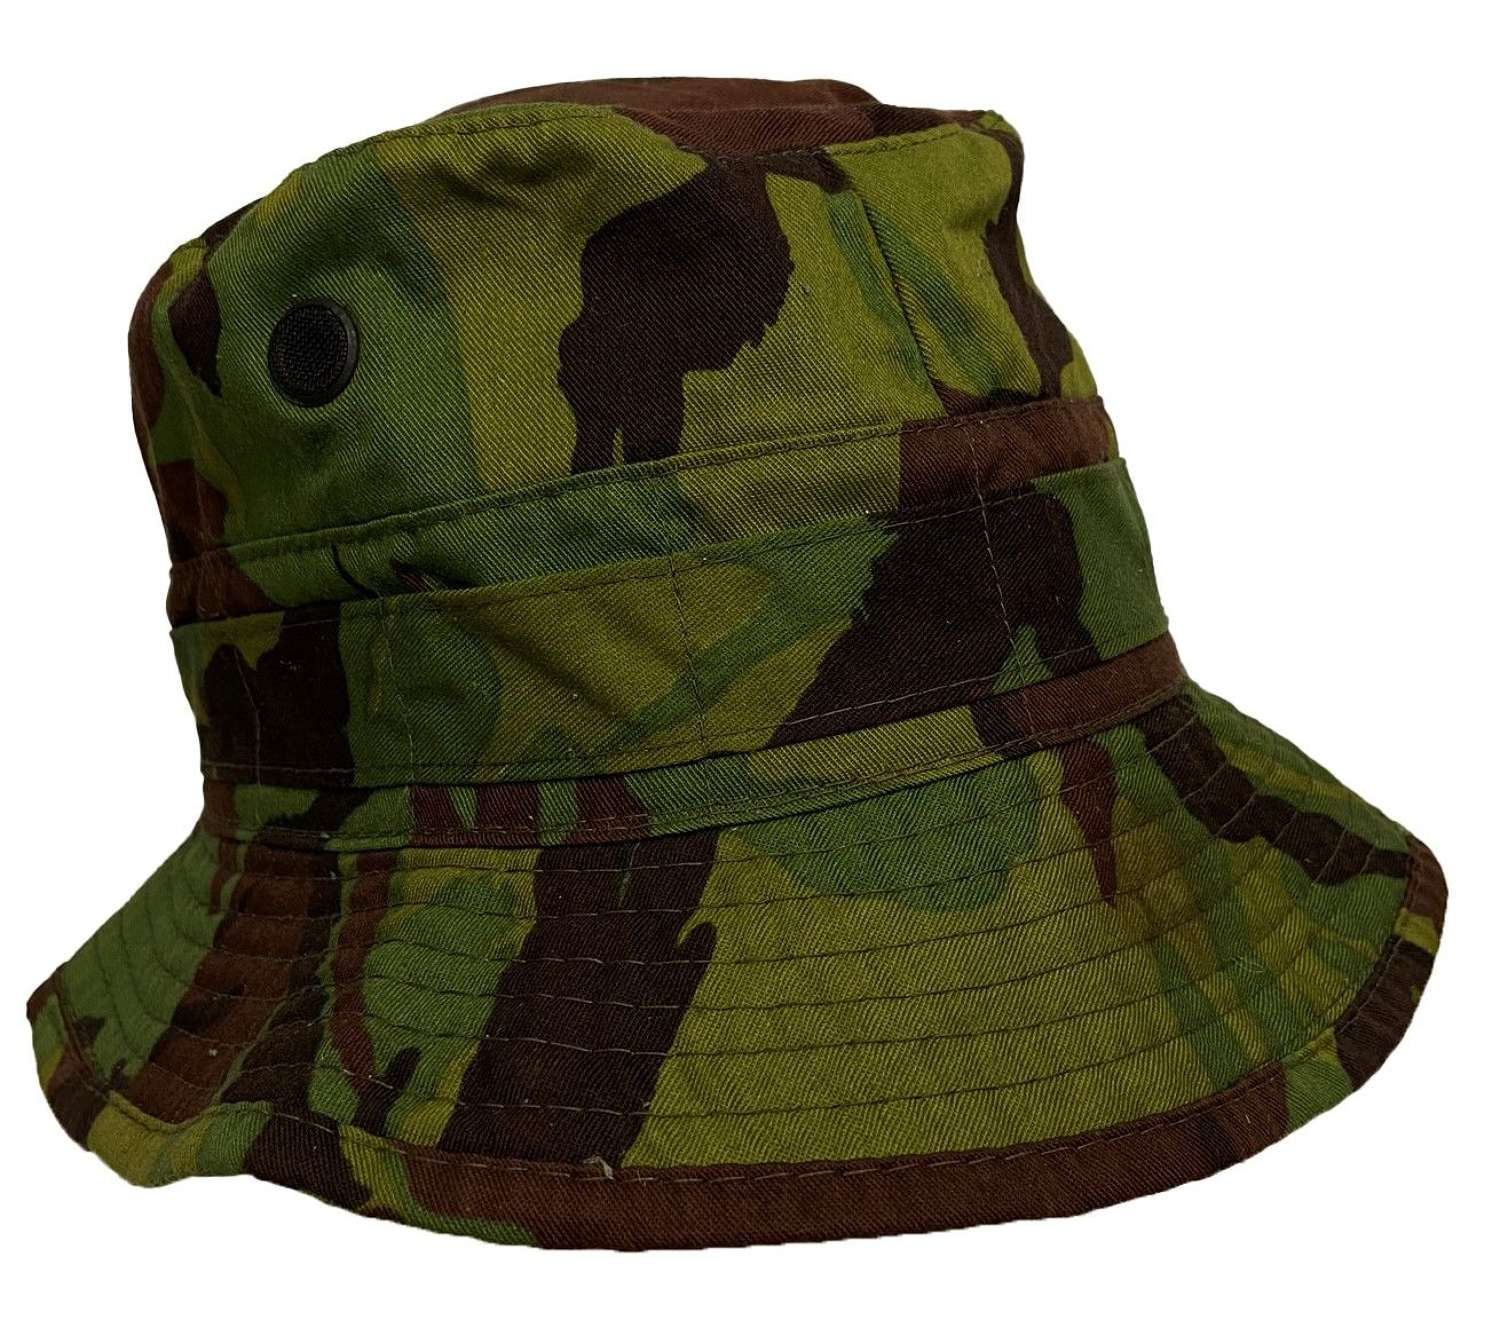 Original 1970s British Army DPM Boonie Hat